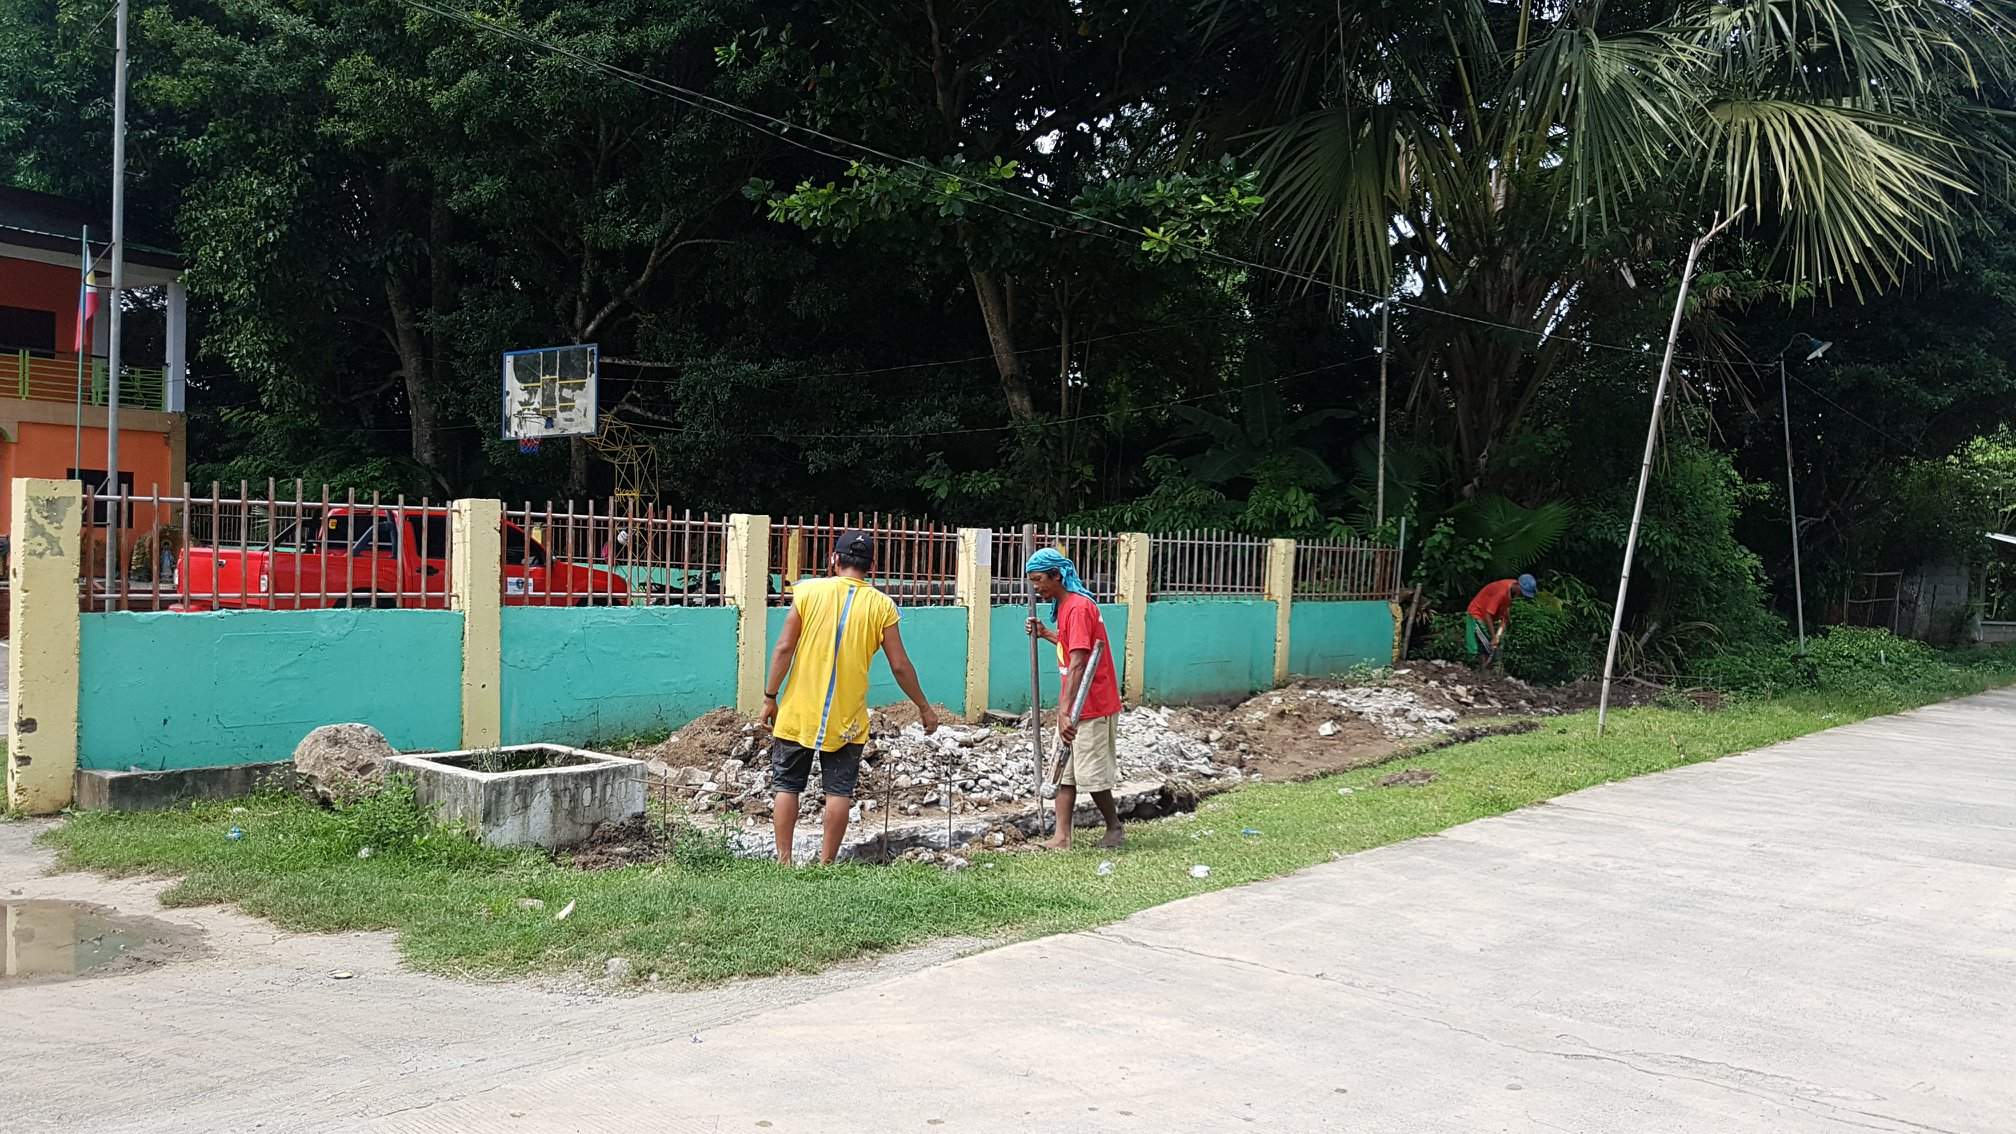 ONGOING: Construction of satellite market (talipapa) in Brgy. Malimpec